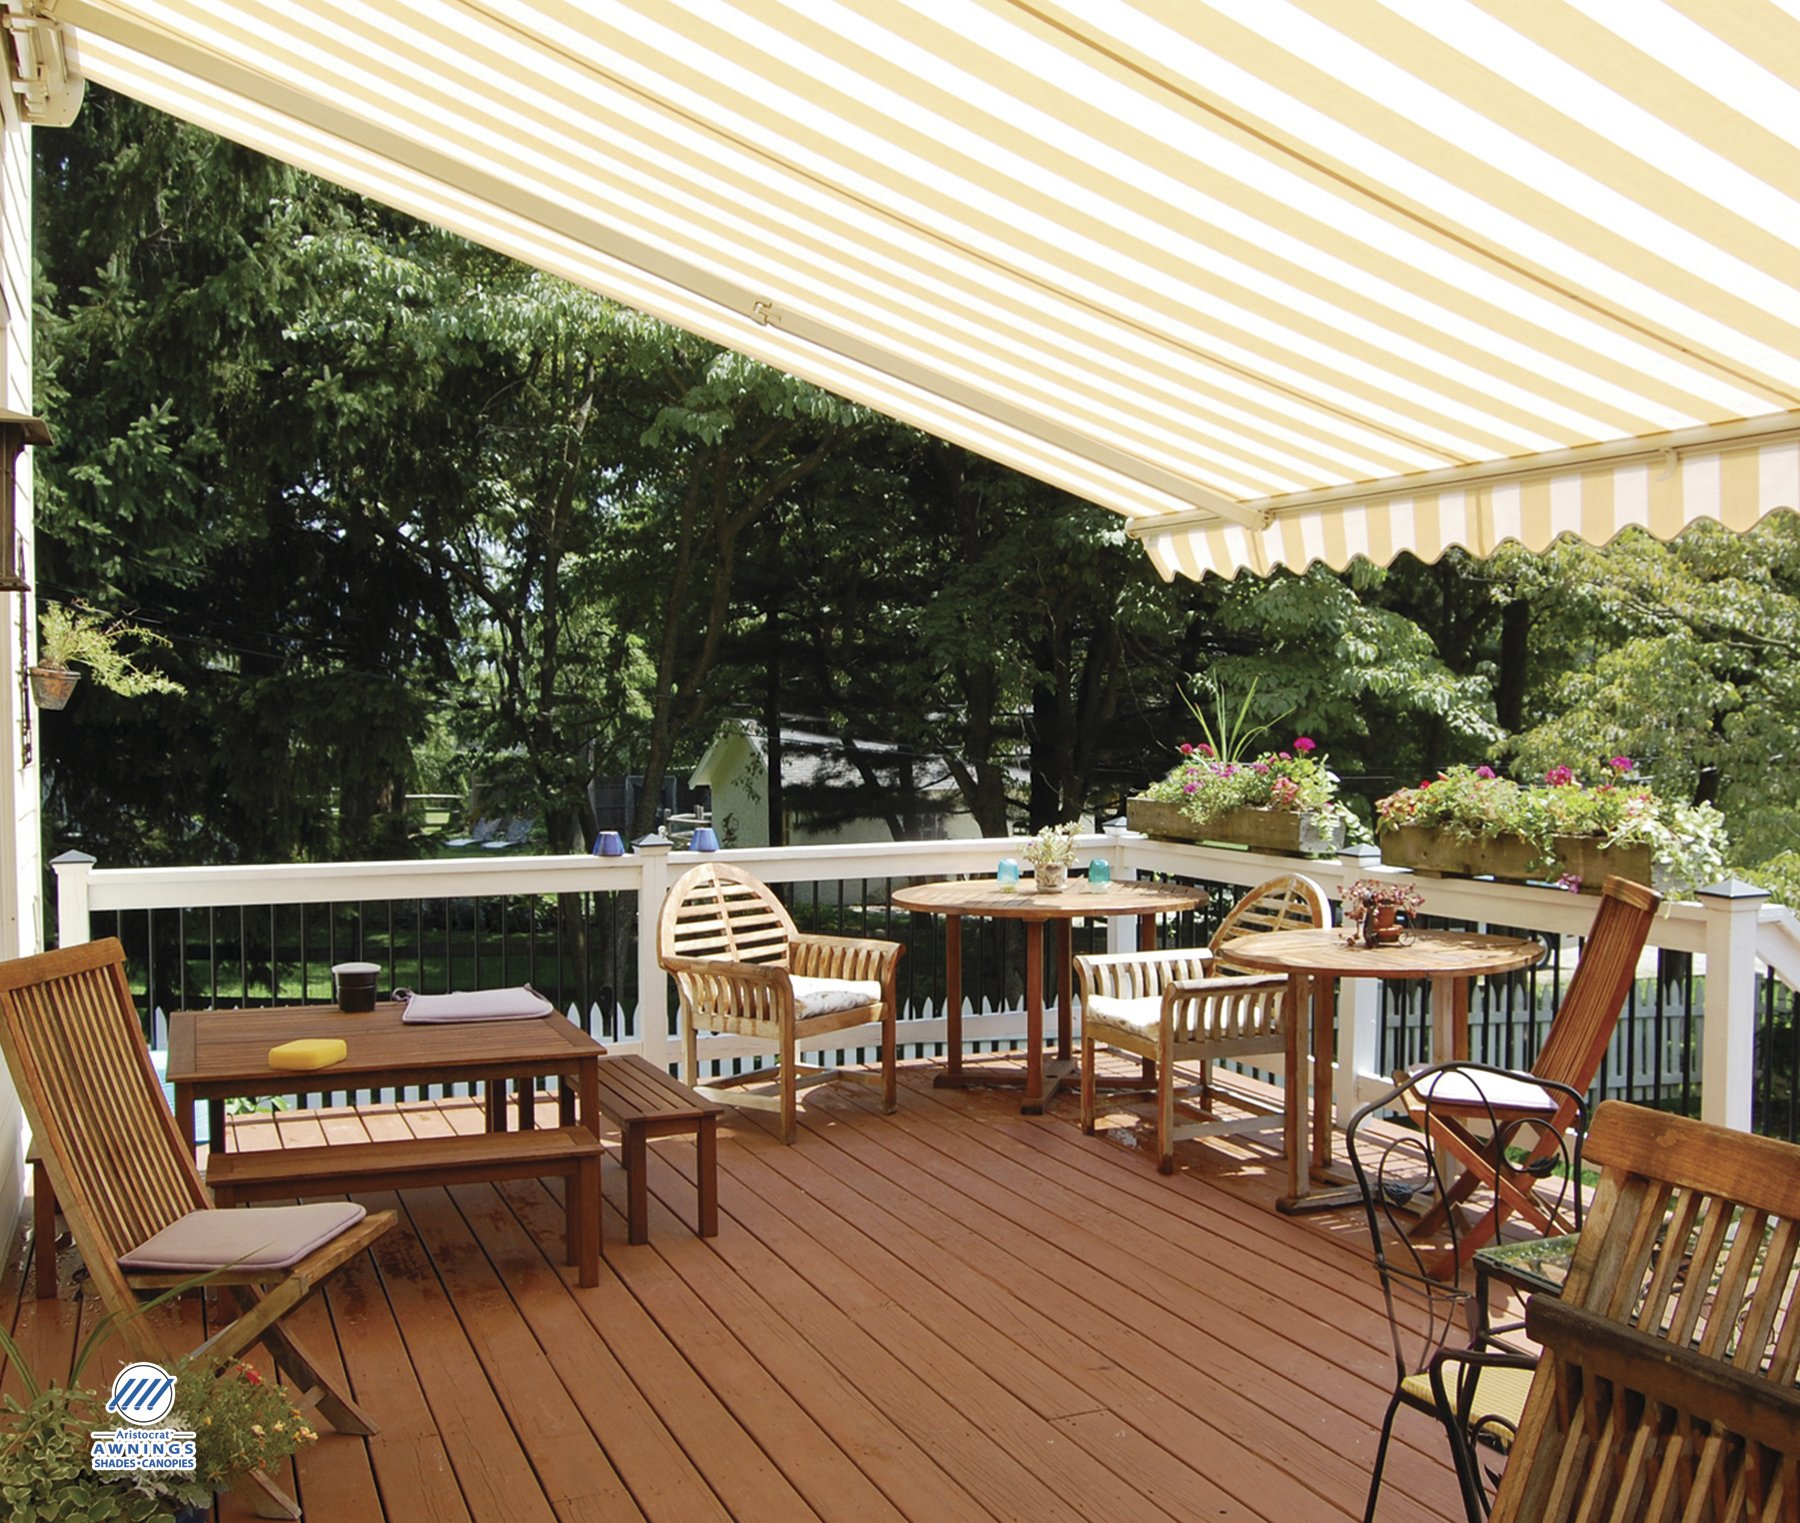 Retractable Pergolas | Awnings | Boston MA - 617-631-9720